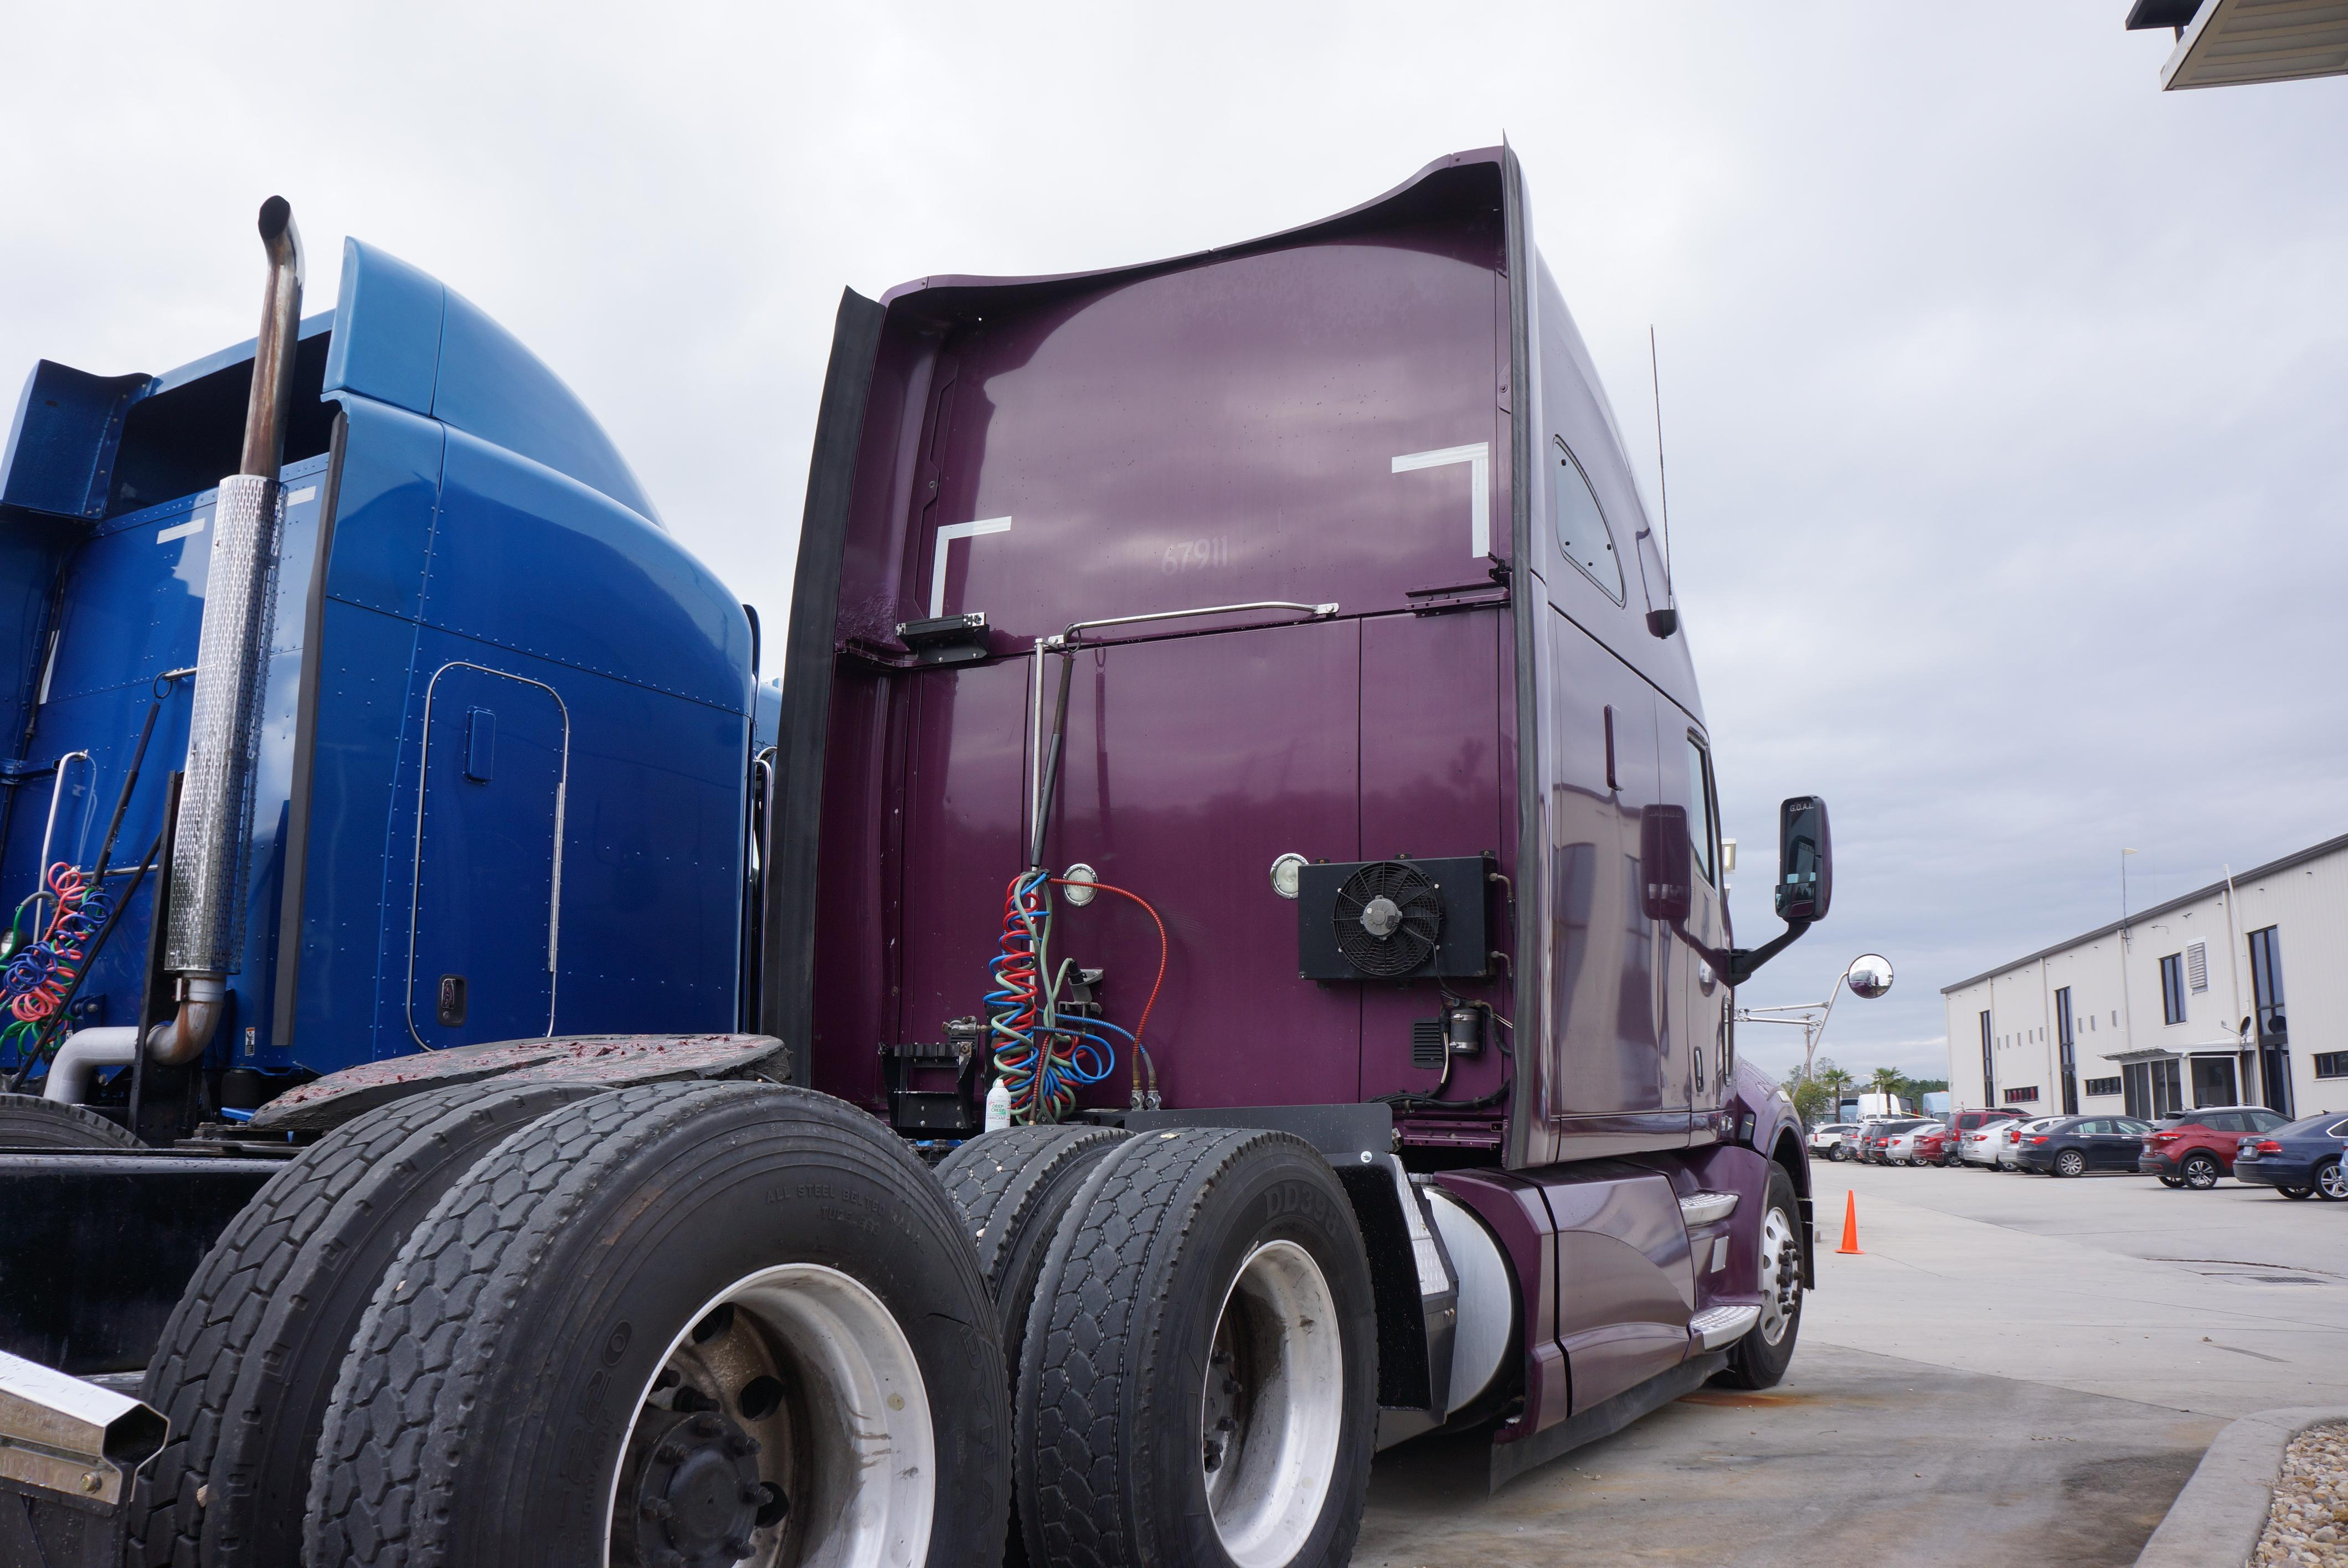 USED 2012 KENWORTH T700 SLEEPER TRUCK #136424